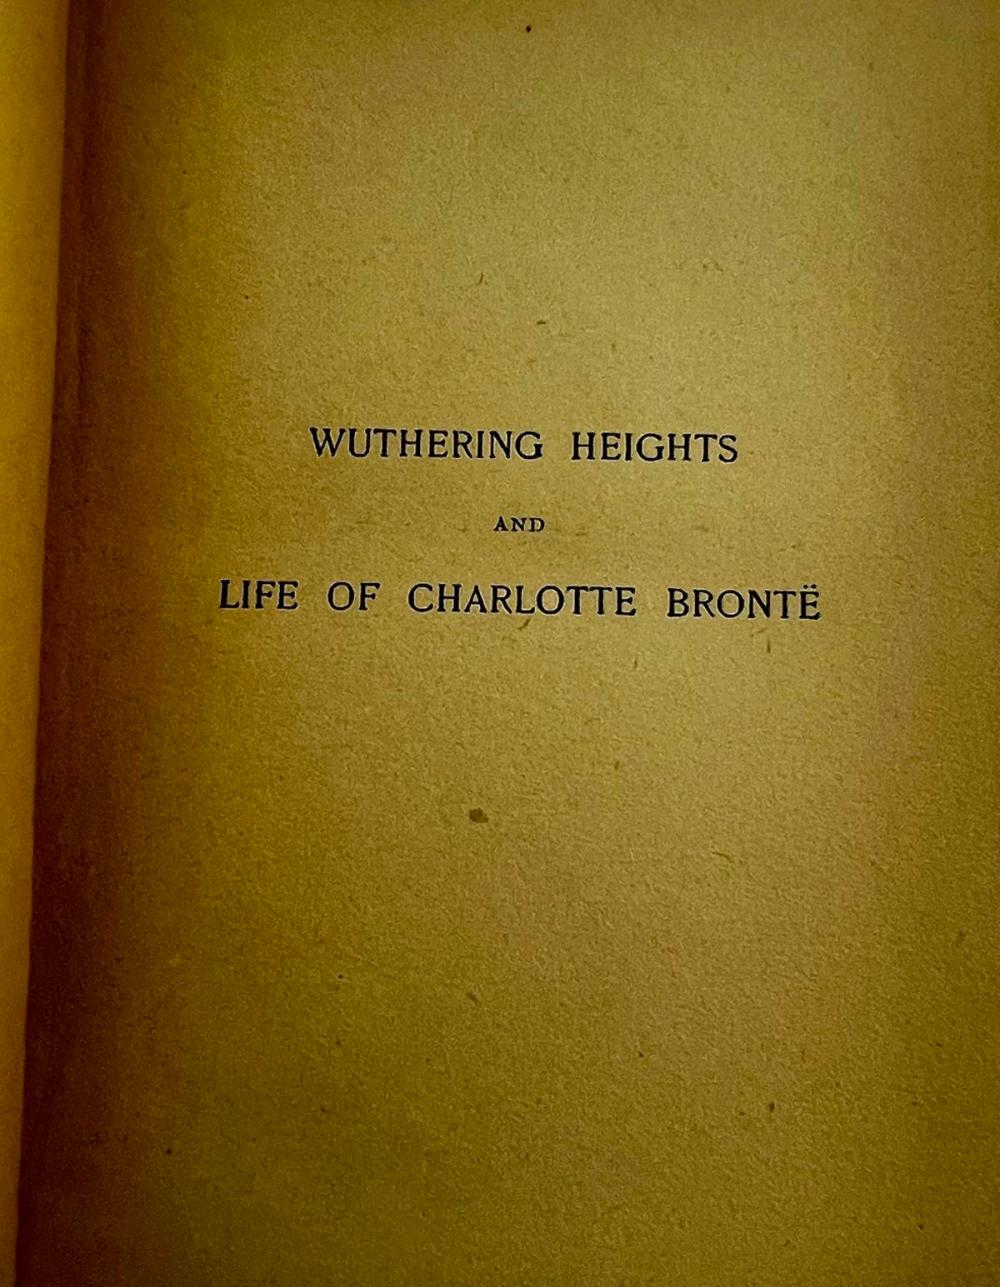 1891 Wuthering Heights and The Life of Charlotte Bronte by Emily Bronte